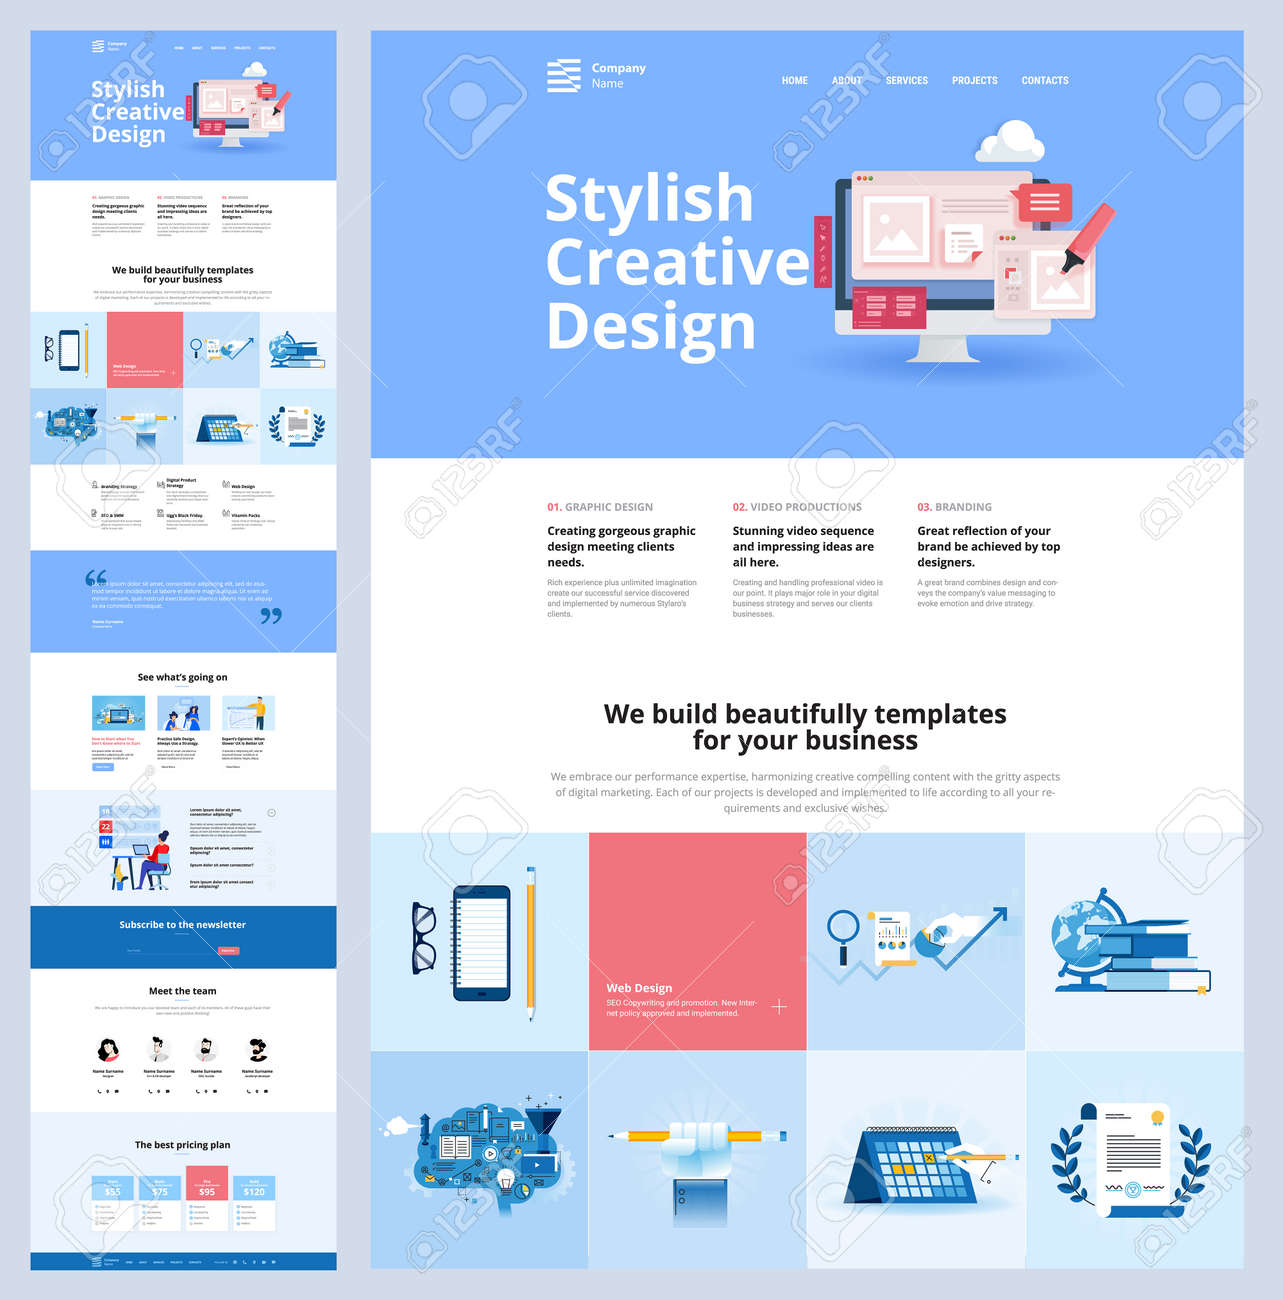 One page website design template. Vector illustration concept for web design and development on the topic of creative web templates, branding, video marketing, business strategy and seo. - 169661957